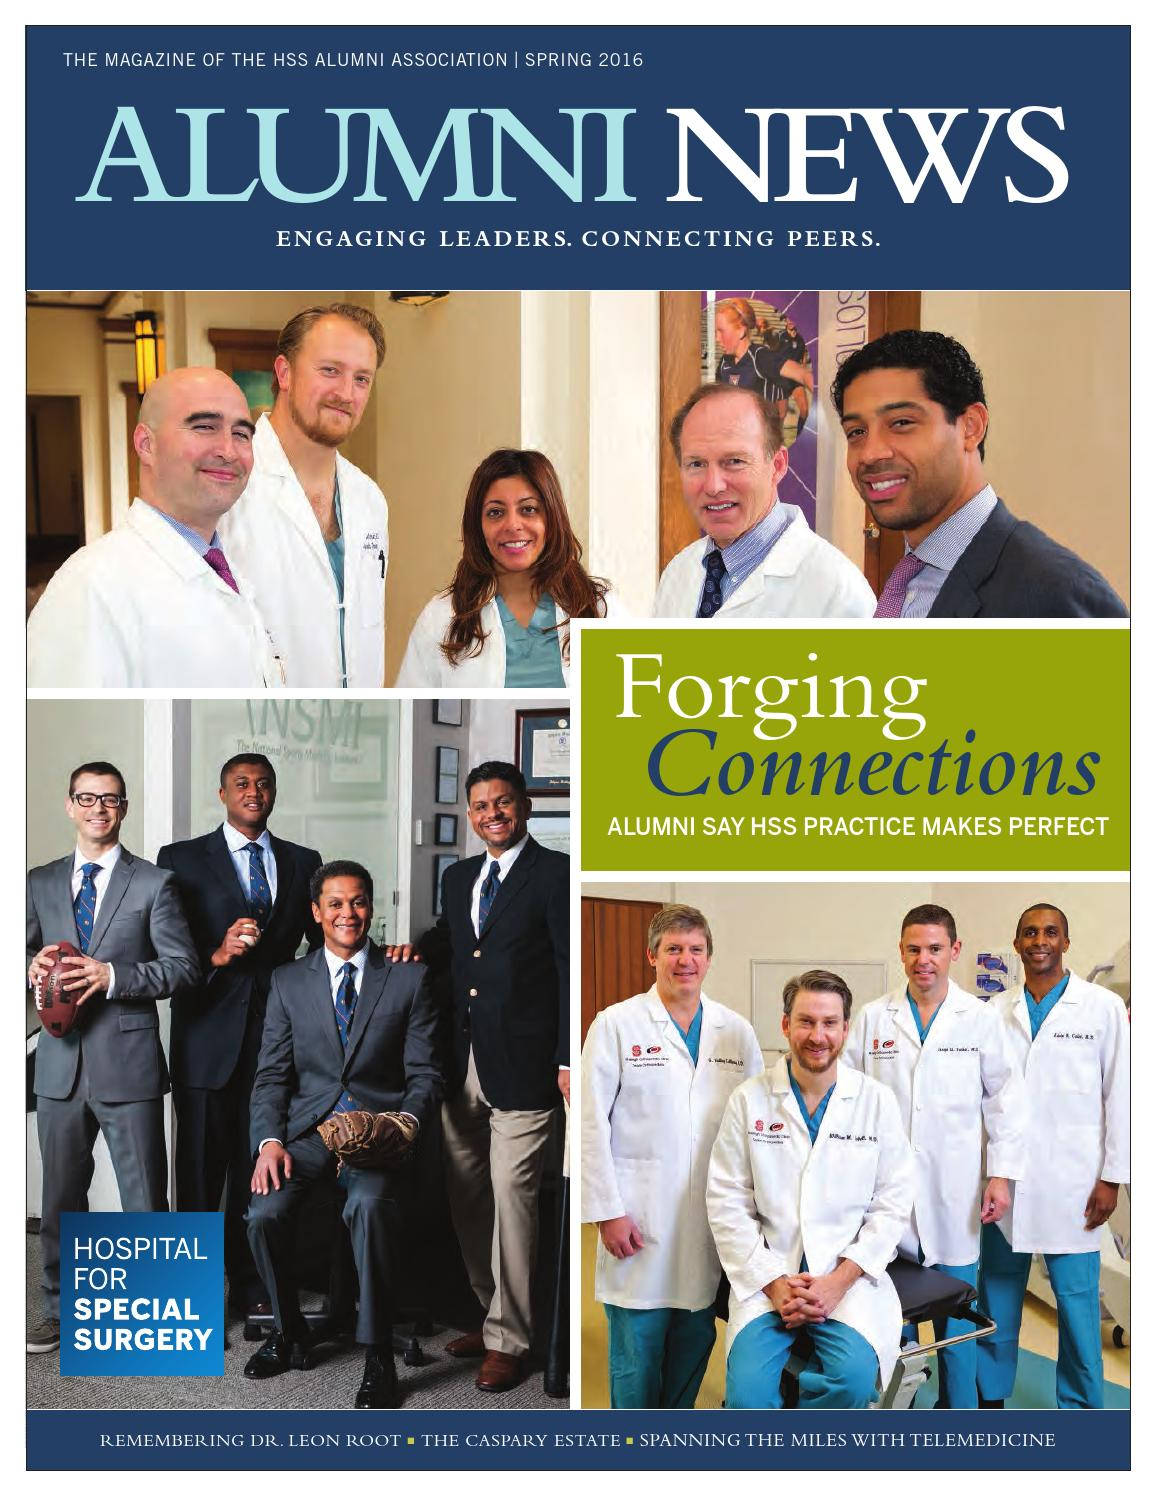 Alumni News Spring 2016 by Hospital for Special Surgery - issuu